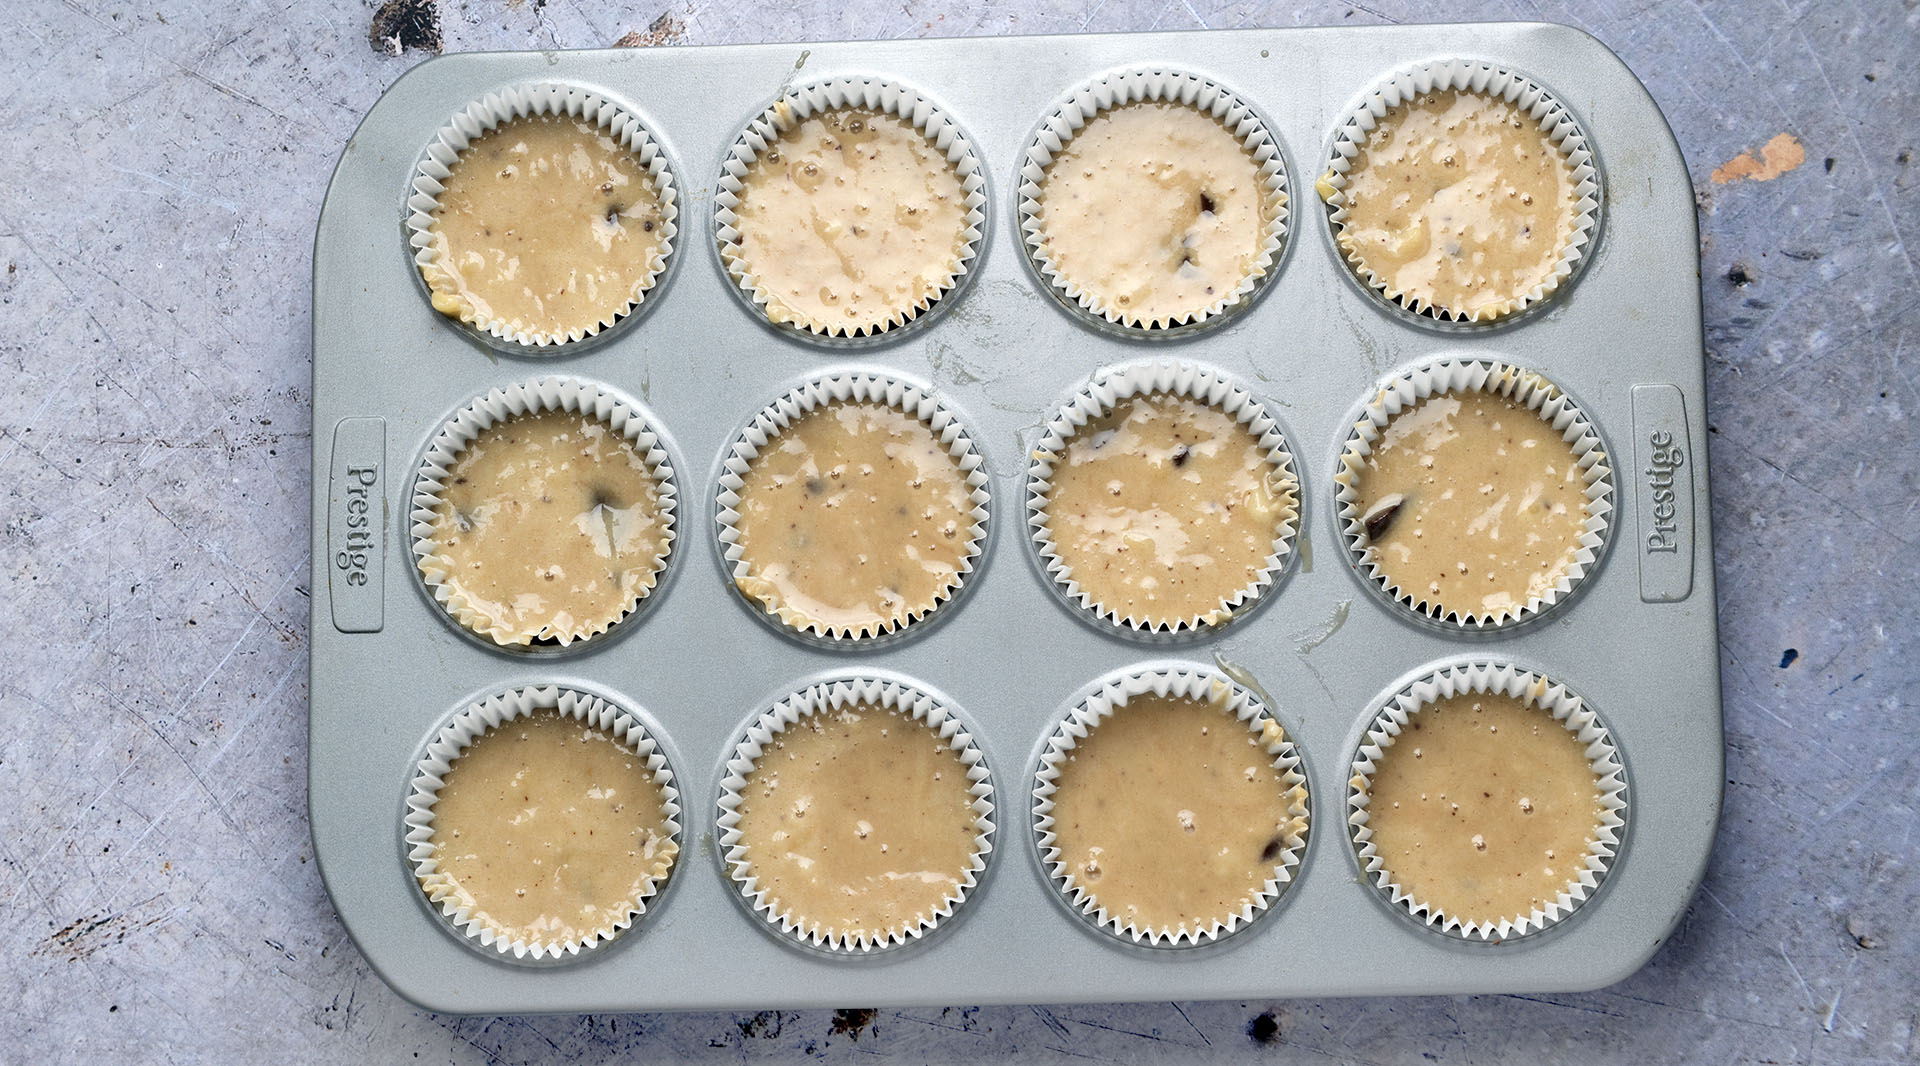 uncooked banana muffins in muffin cases